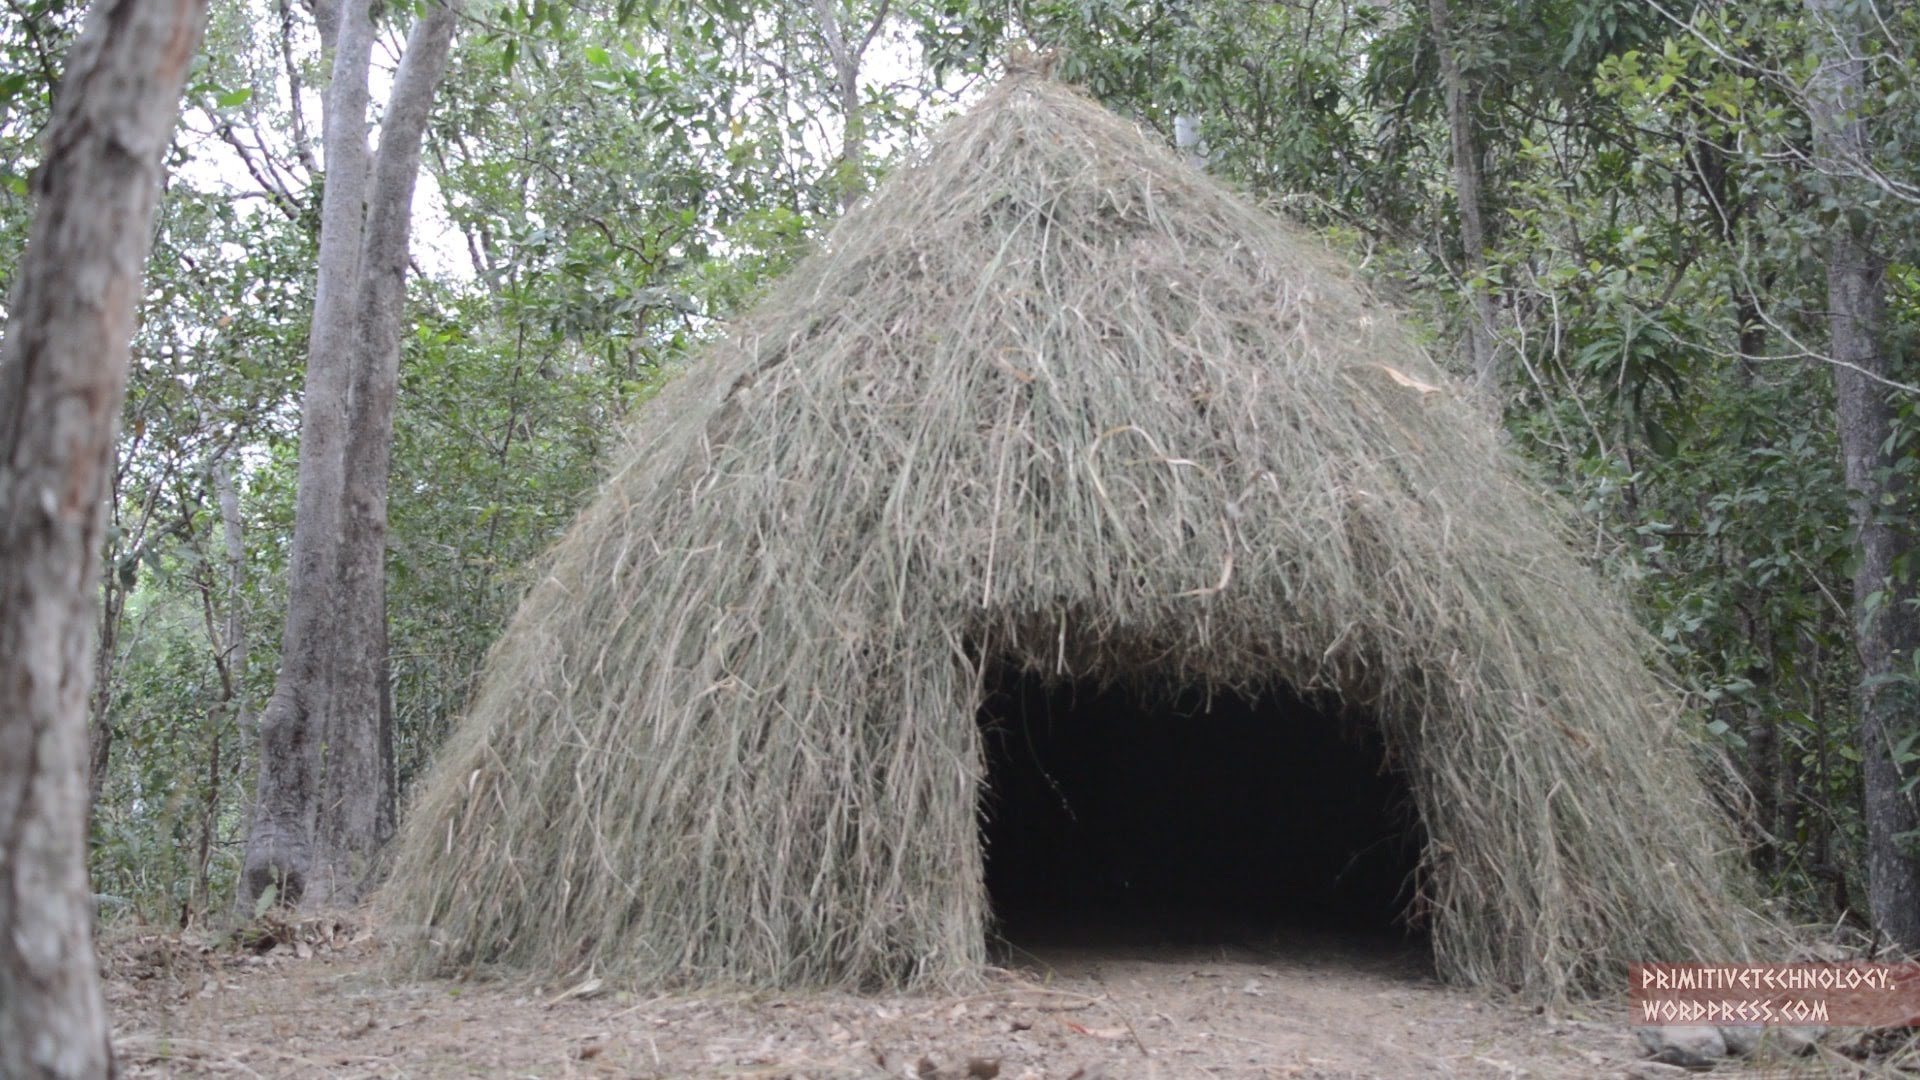 Primitive Technology: Grass hut - YouTube